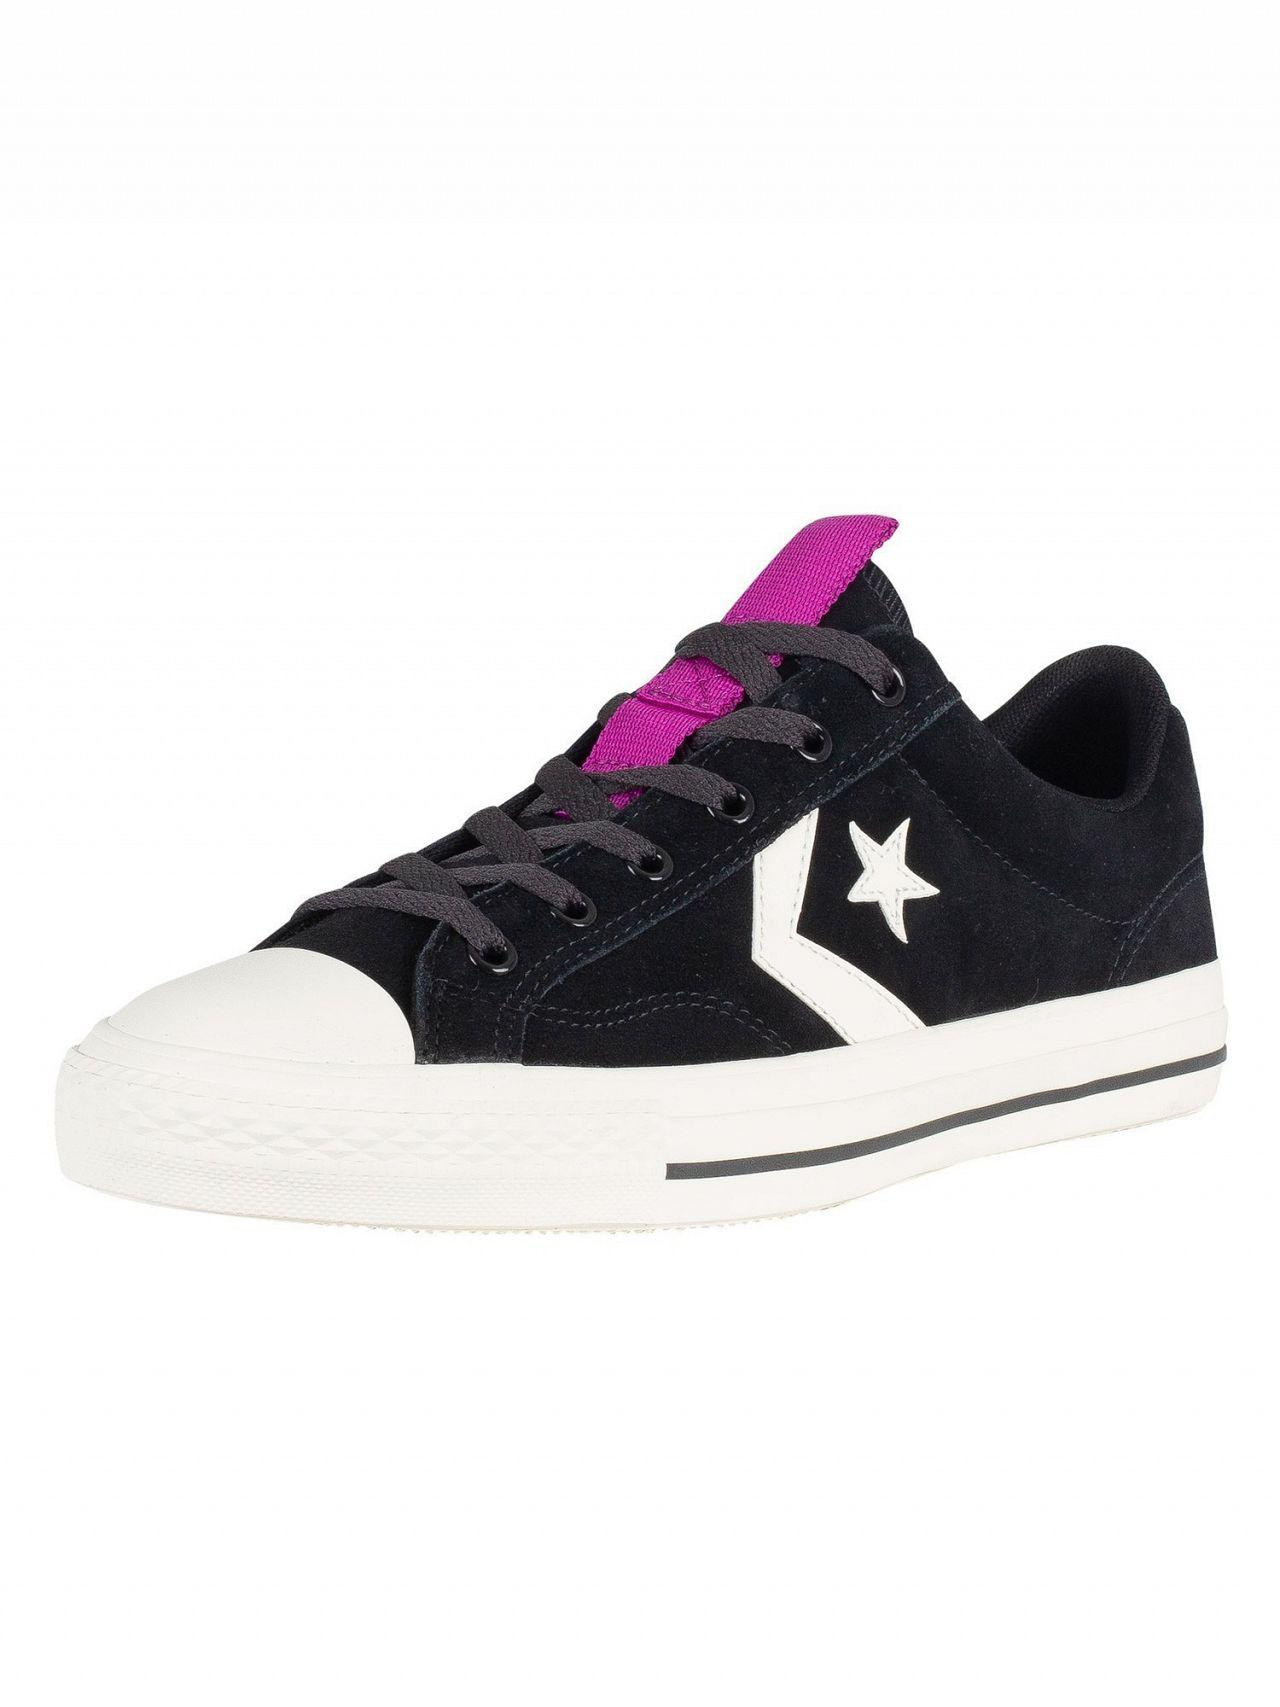 converse trainer